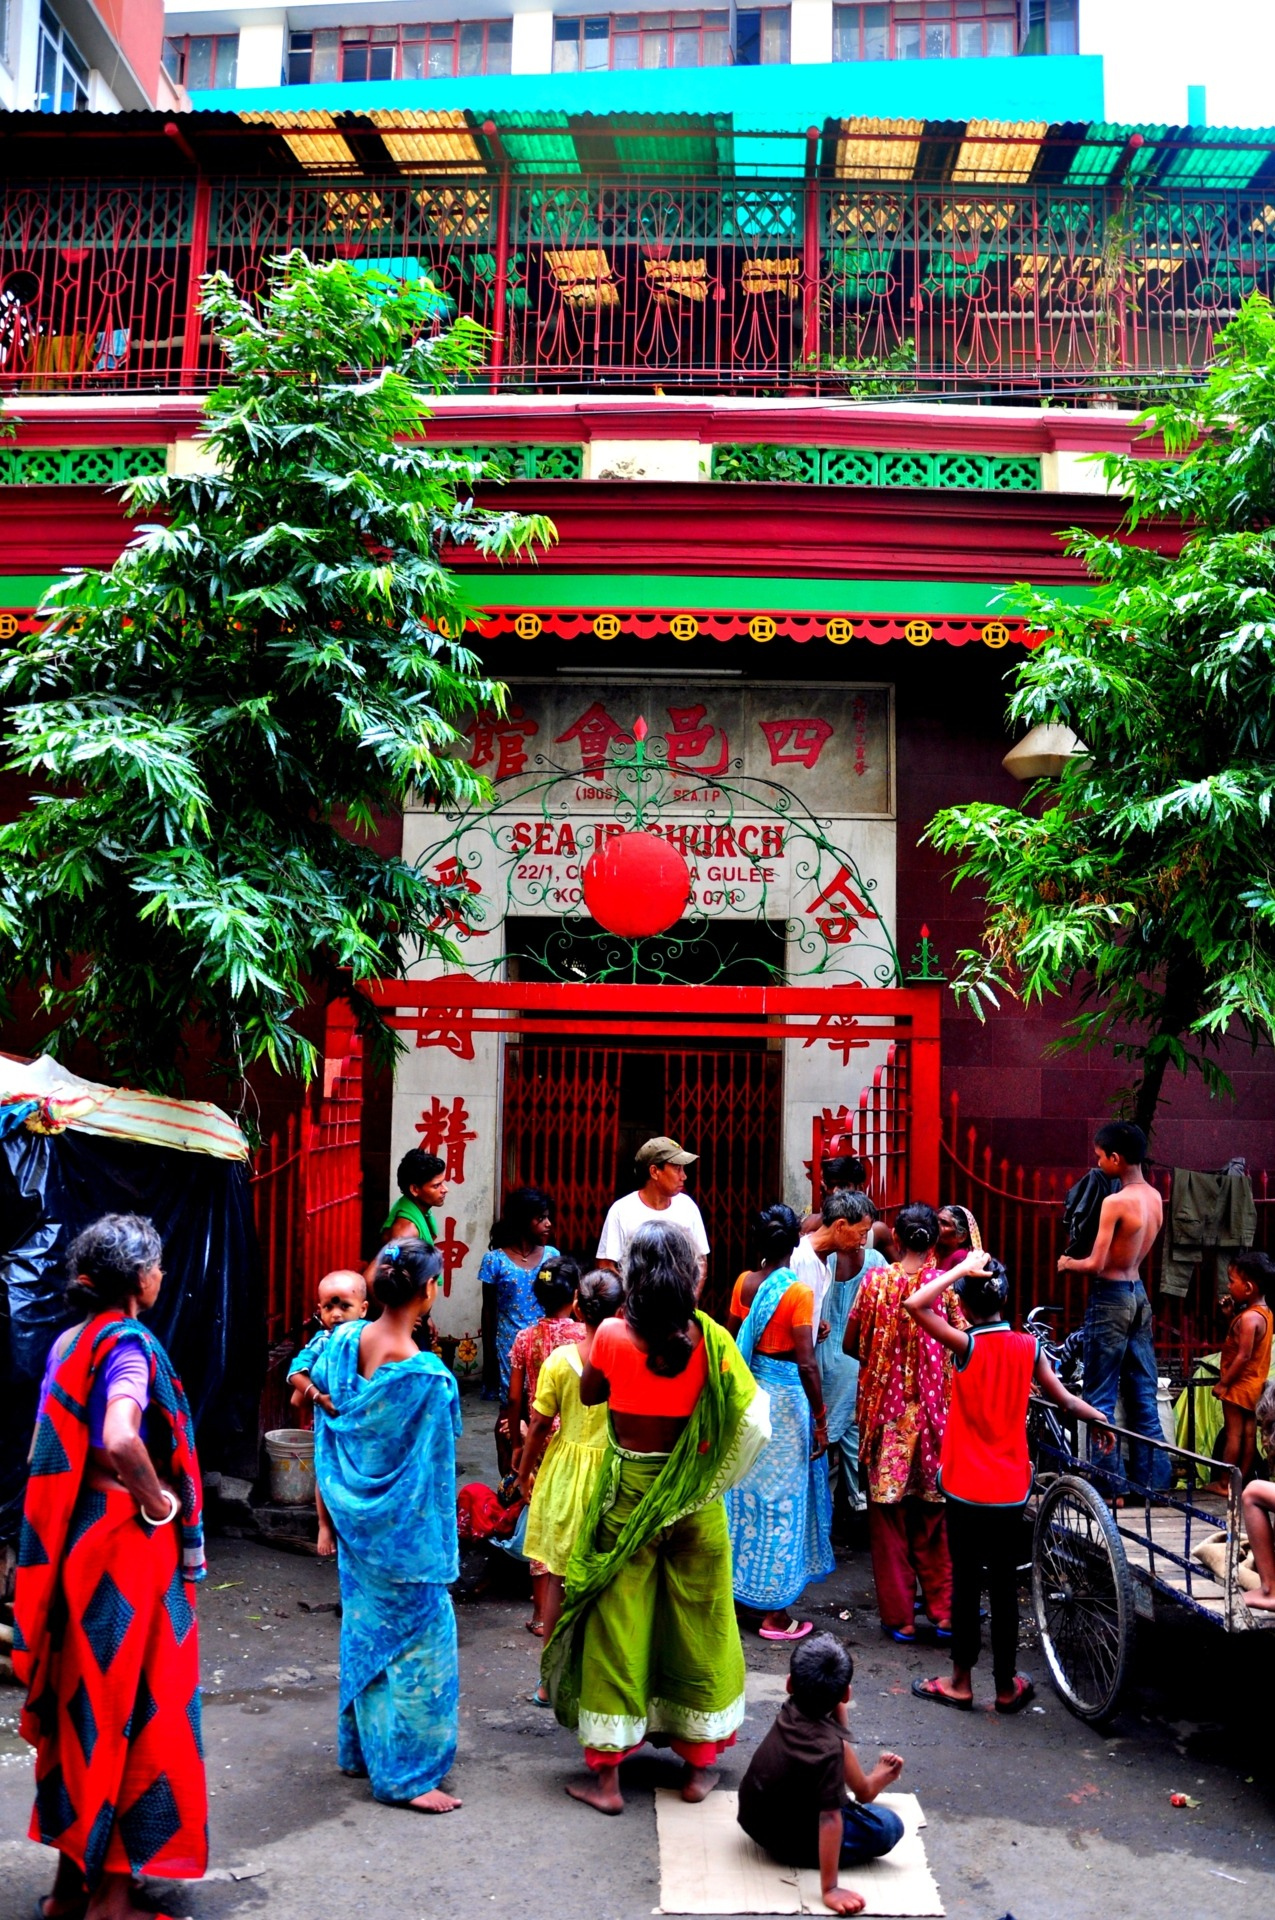 Chinatown church in Kolkata, India